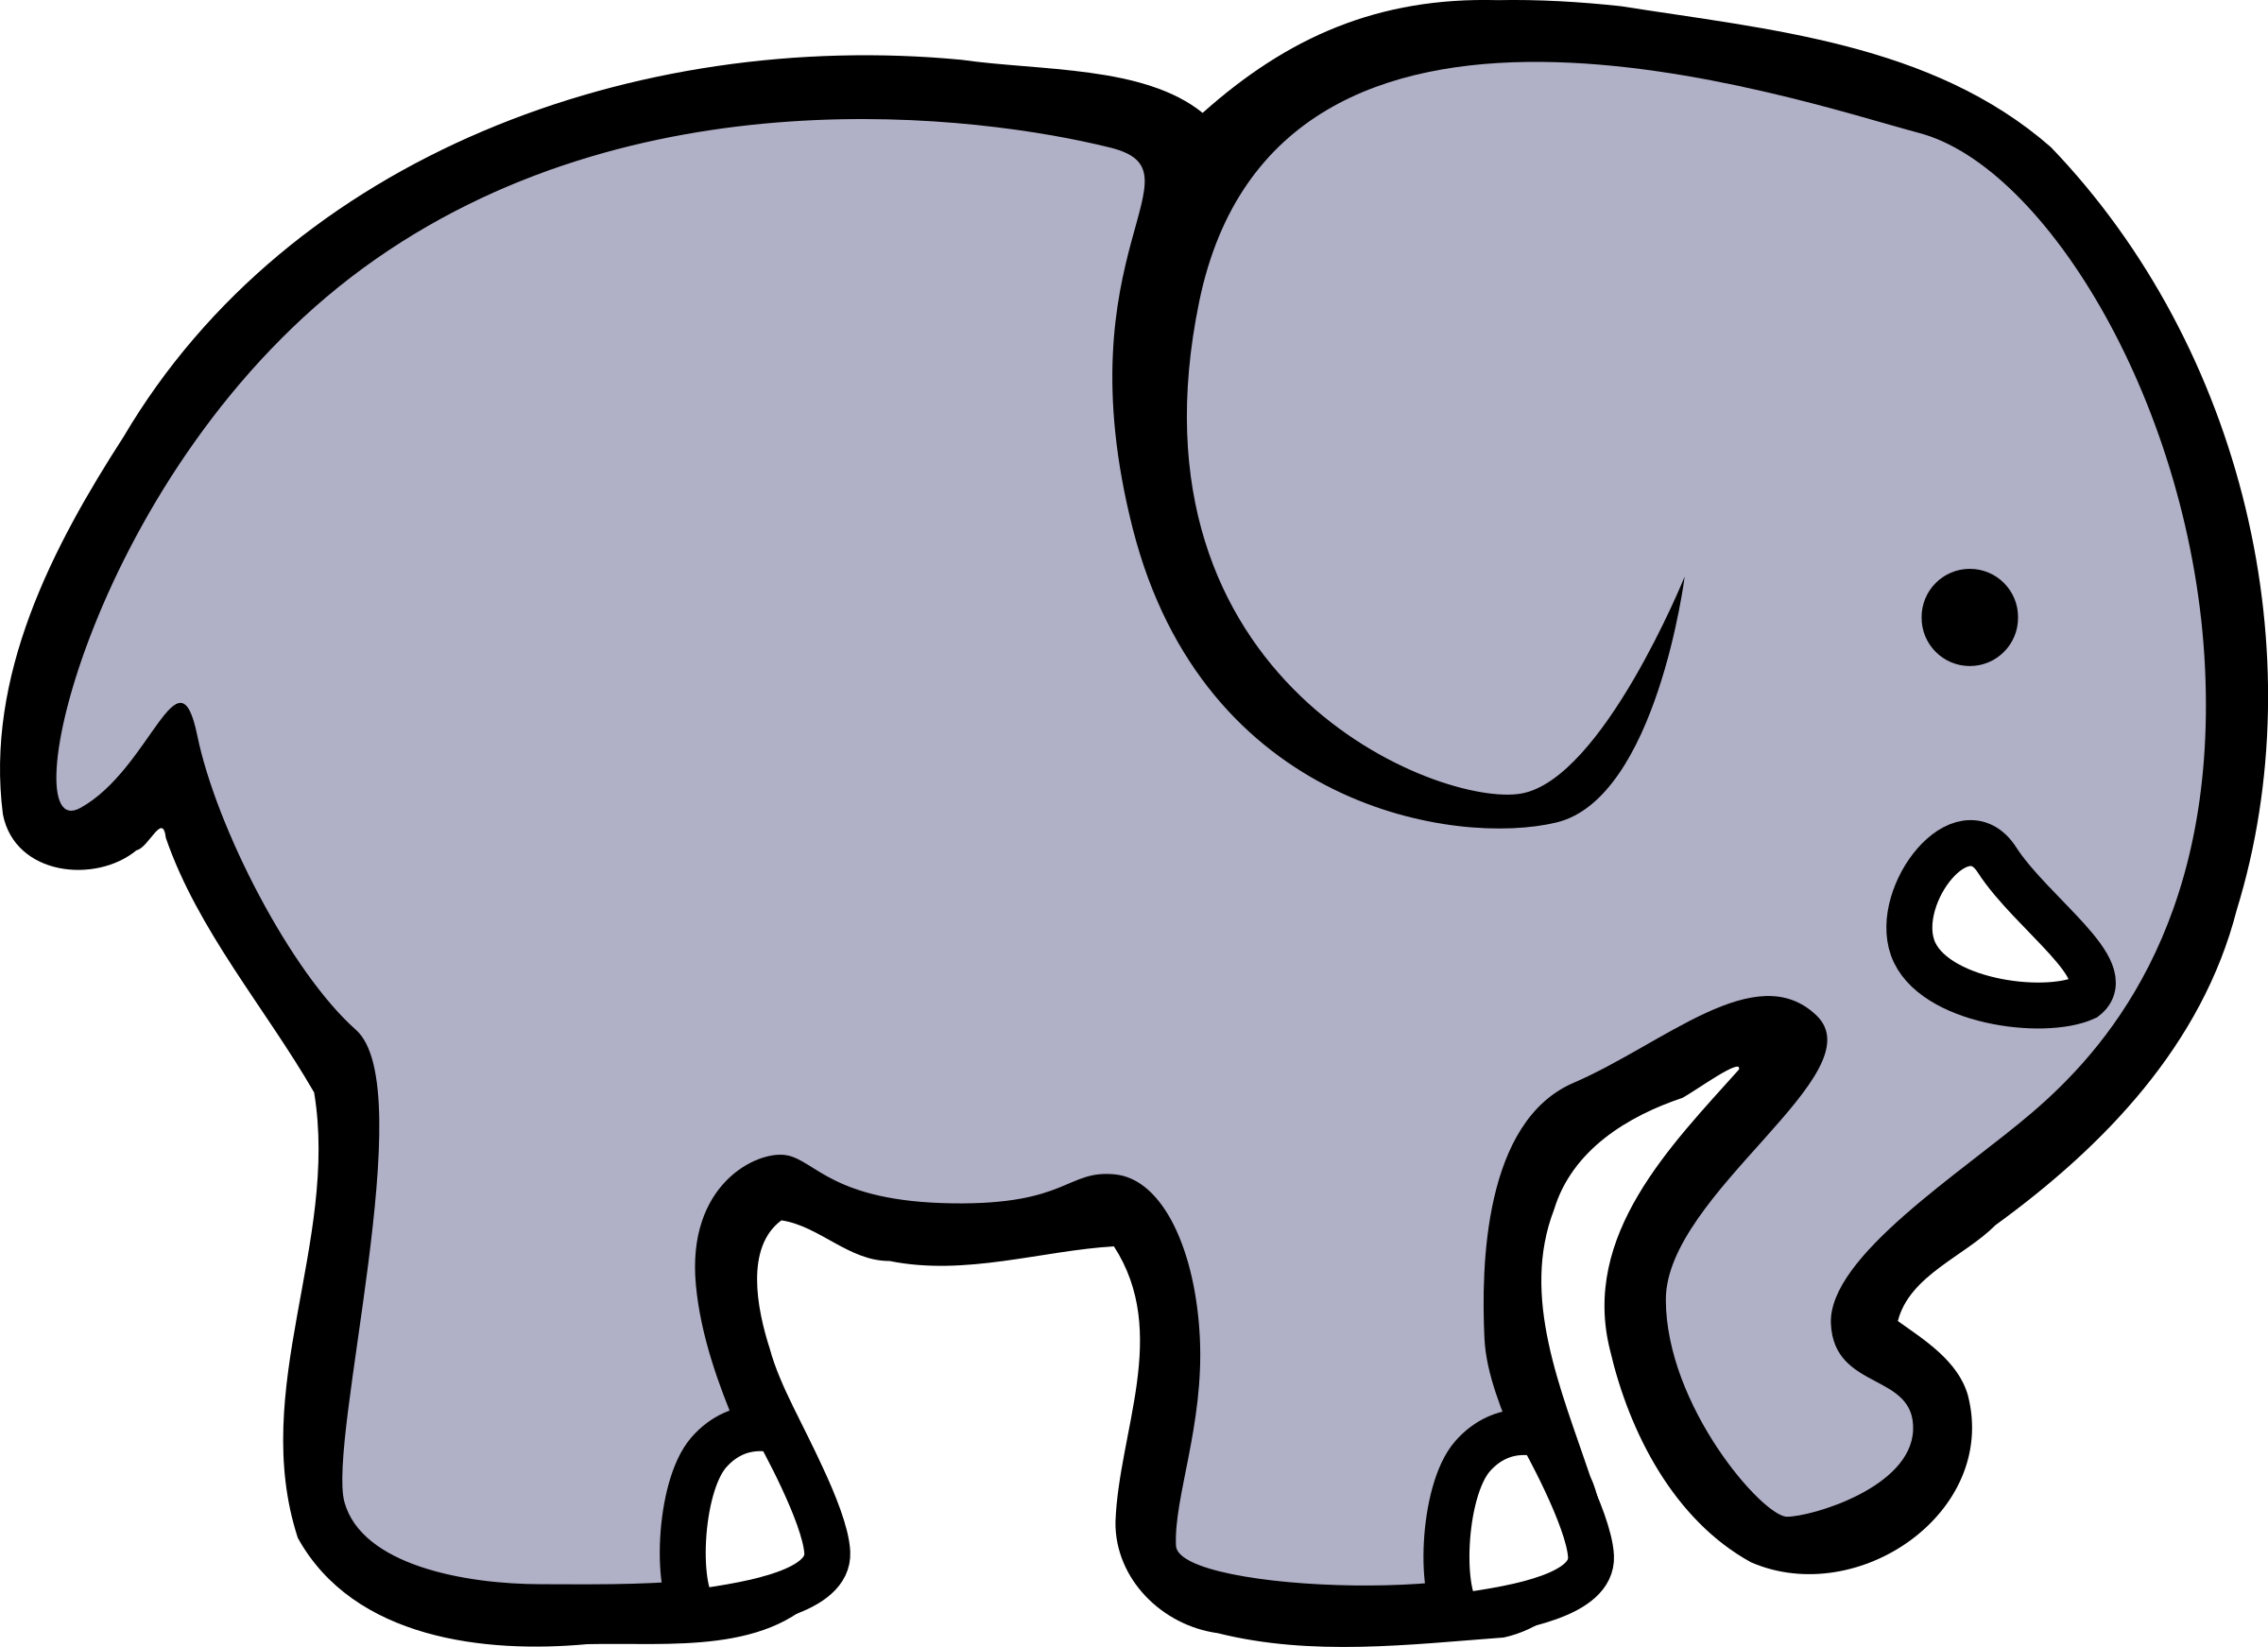 Marriage Clipart Elephant Marriage Elephant Transparent Free For Download On Webstockreview 2020 Gray elephant, elephant computer file, creative elephant stands transparent background png clipart. marriage clipart elephant marriage